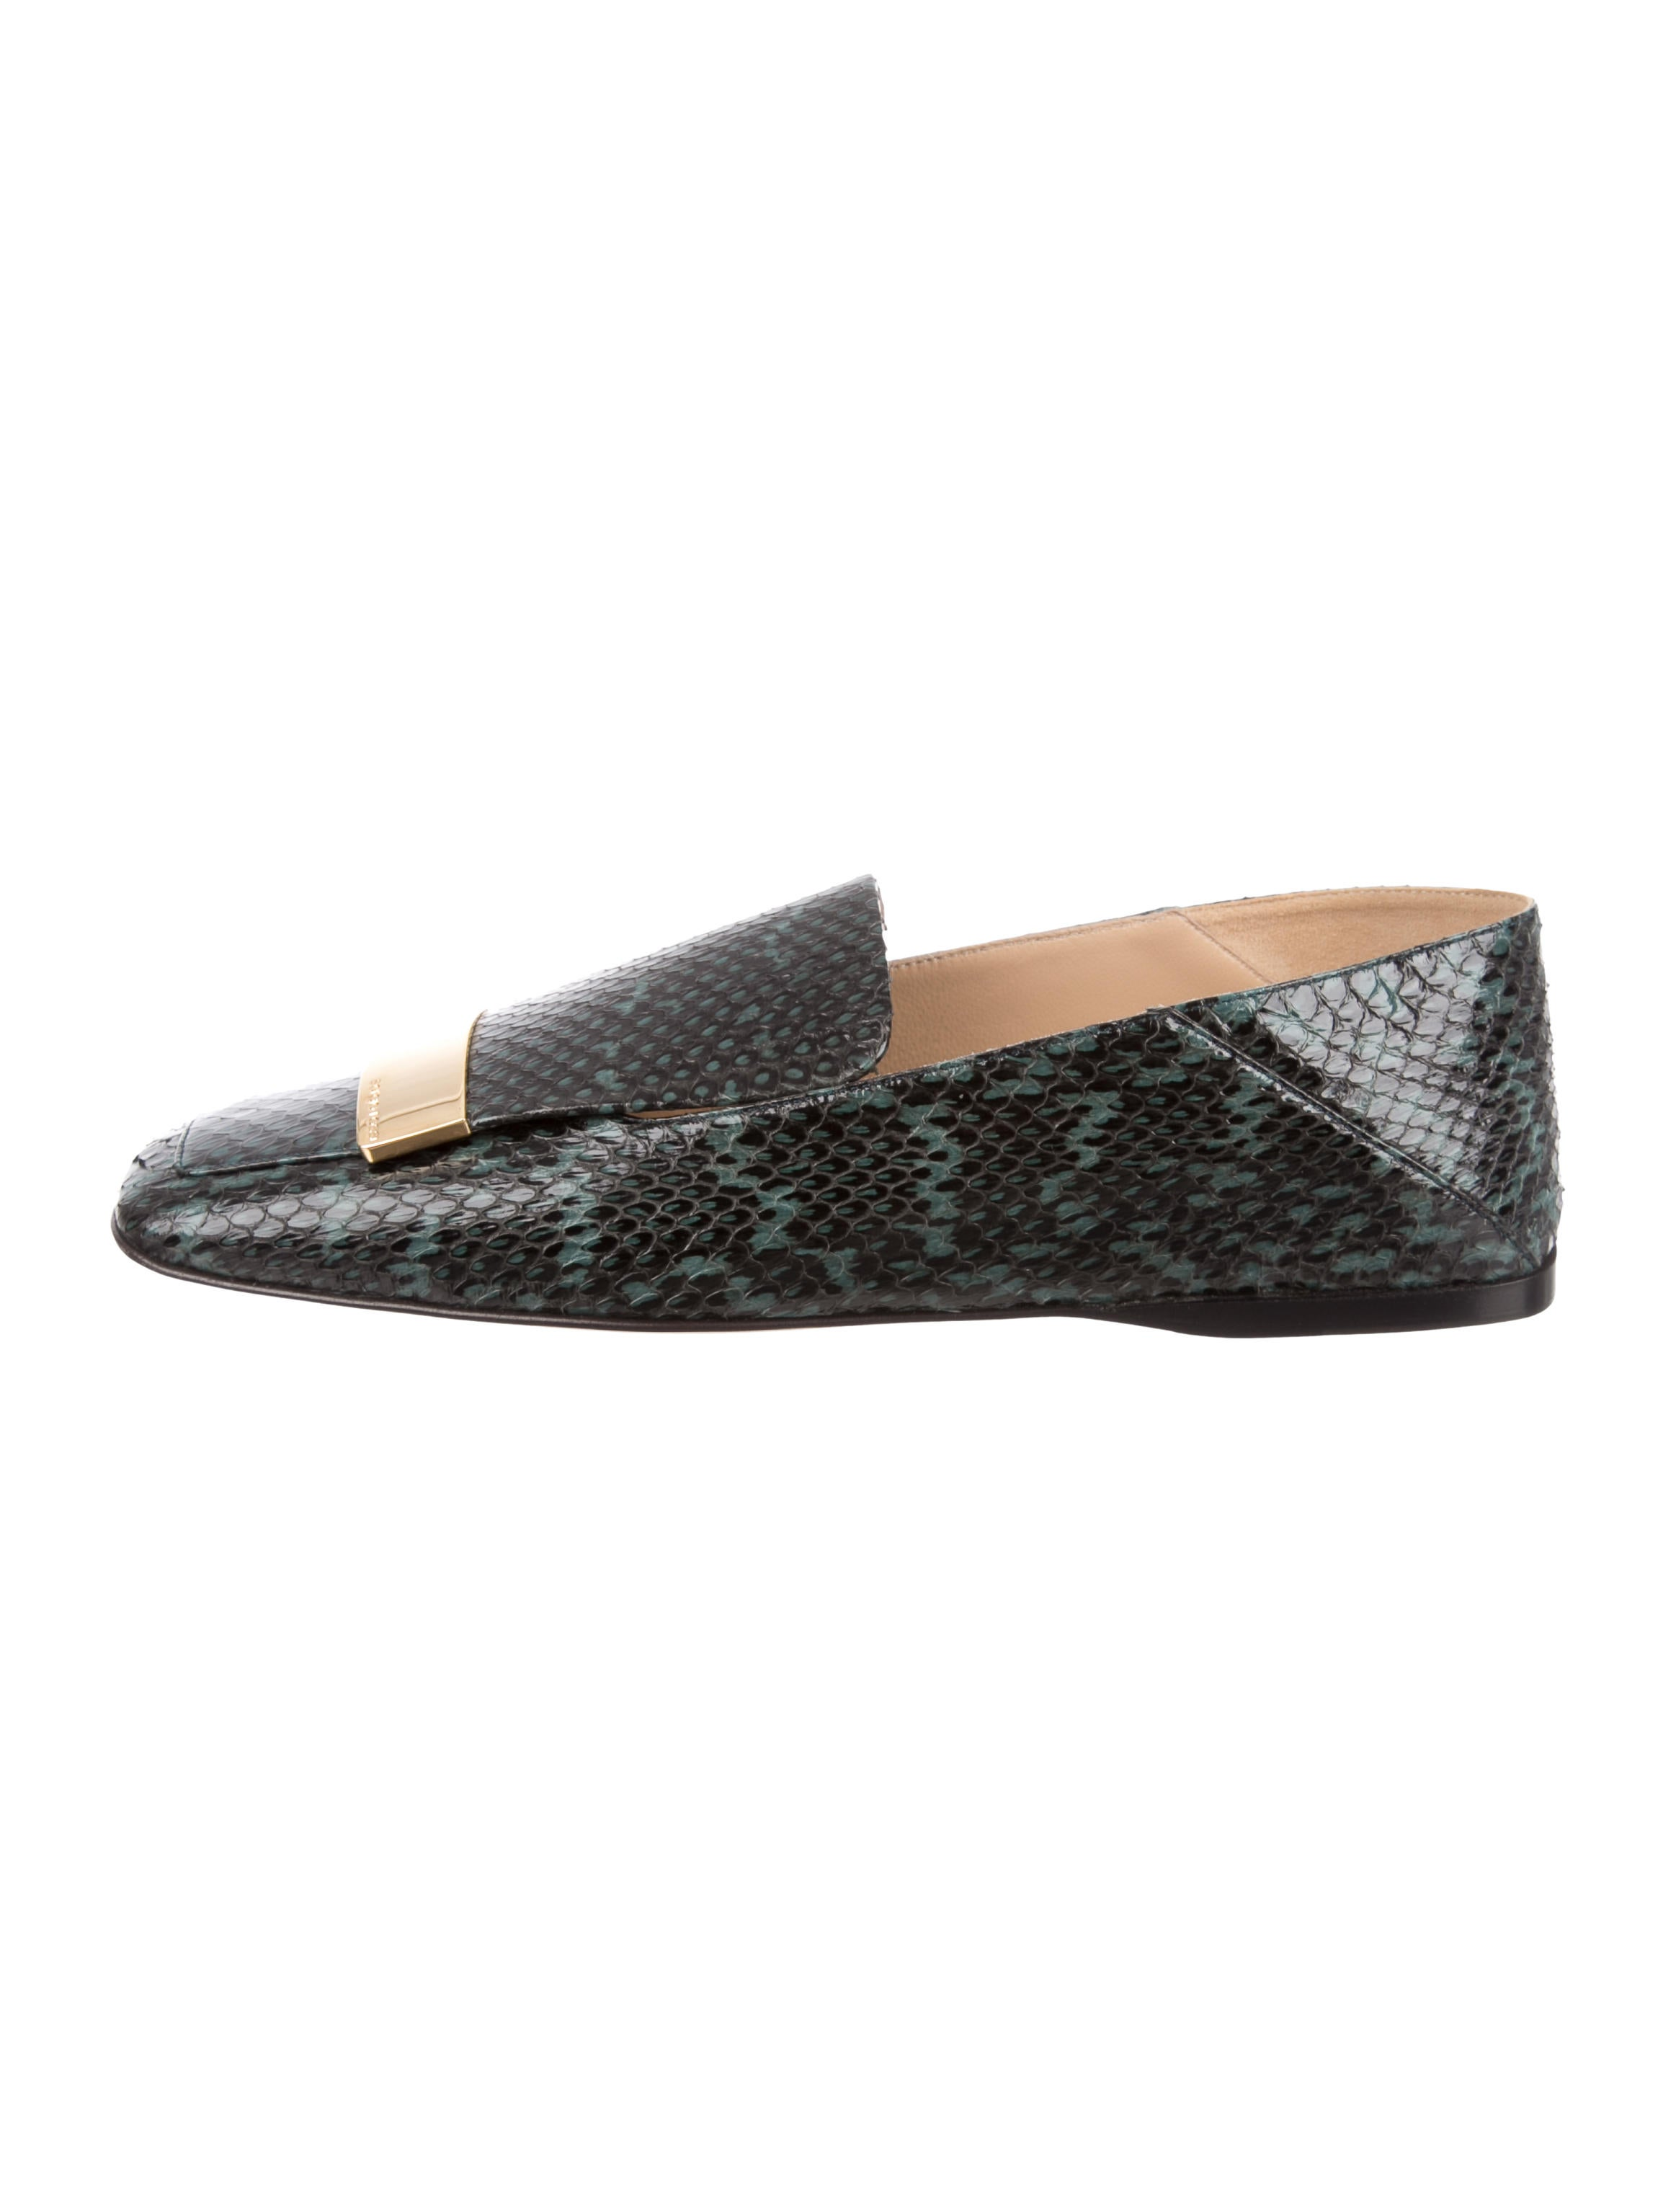 Sergio Rossi Sri Snakeskin Loafers w/ Tags wiki cheap online cheap price discount authentic free shipping pay with paypal fake for sale x3v4Nu